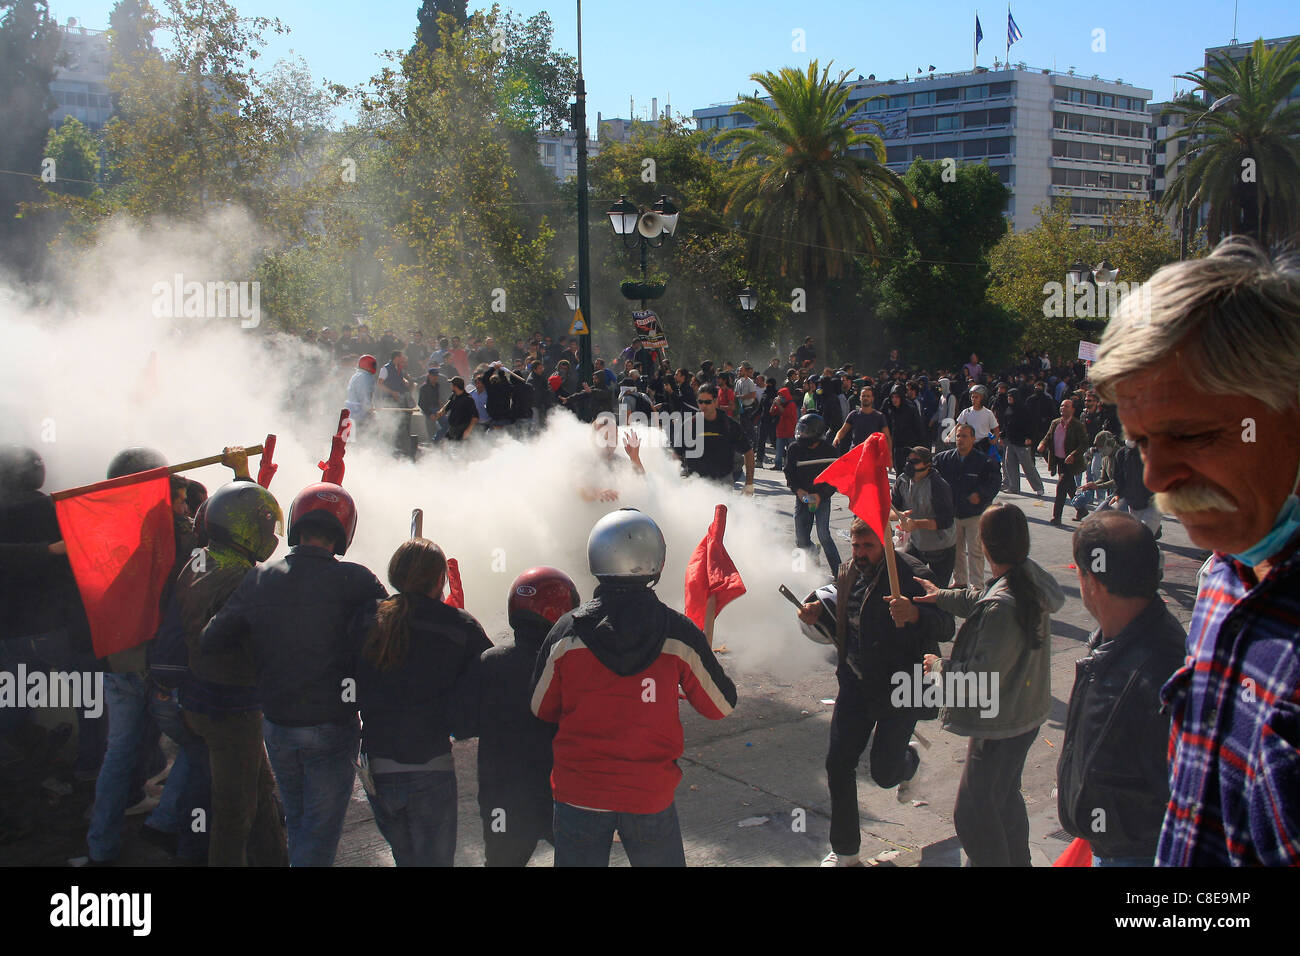 GREECE, ATHENS, SYNTAGMA SQUARE, 20/10/2011. Protests against Greek government's economic policy. Protesters - Stock Image